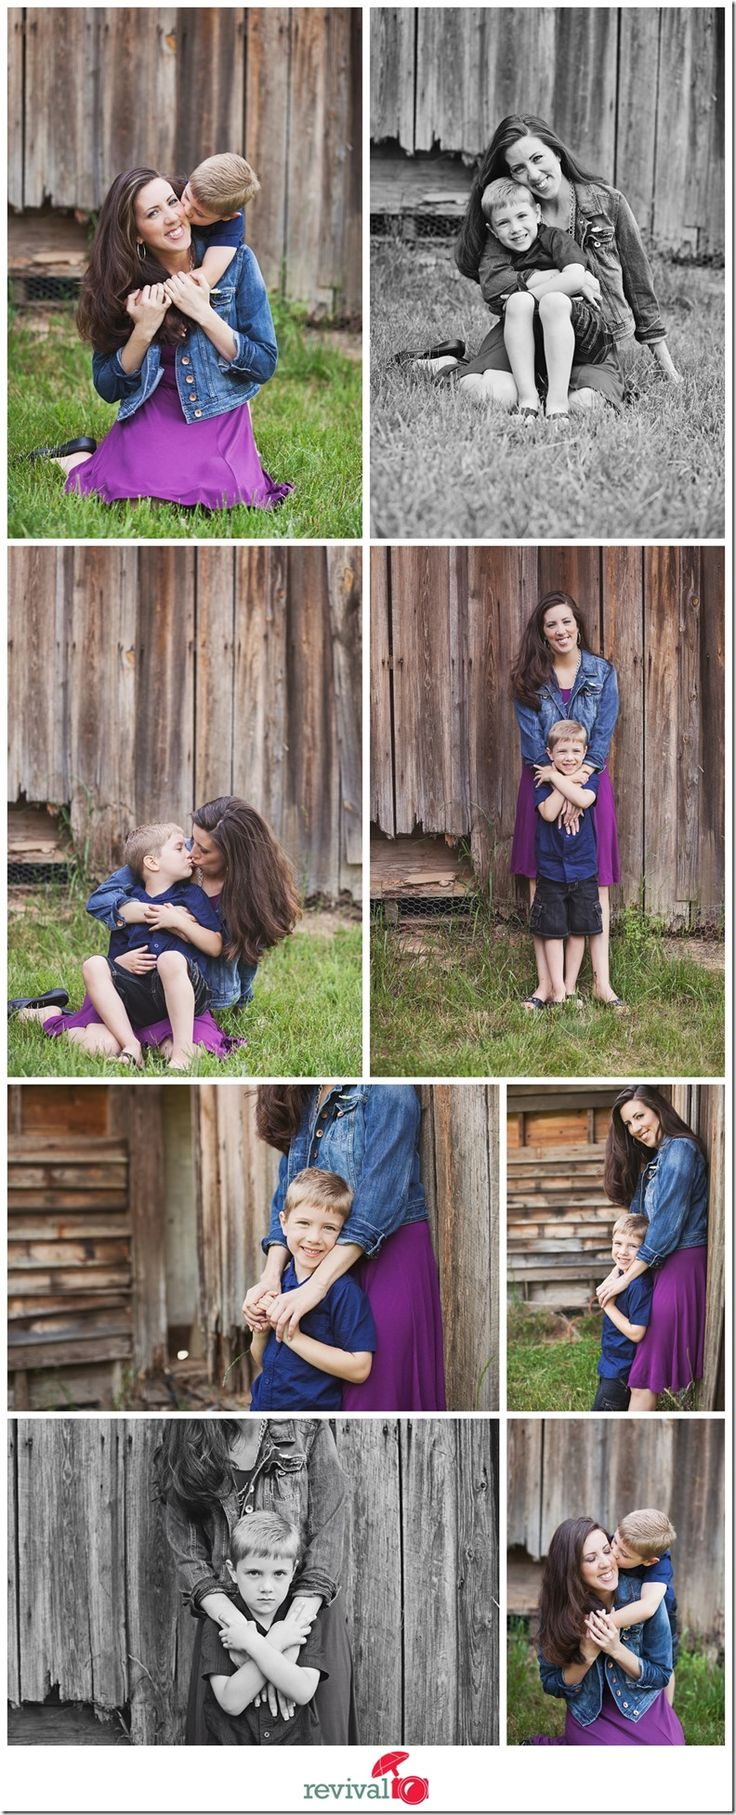 Family Lifestyle Session by Revival Photography Photo North Carolina Photographers Hickory NC Photo Rustic Family Session www.revivalphotography.com